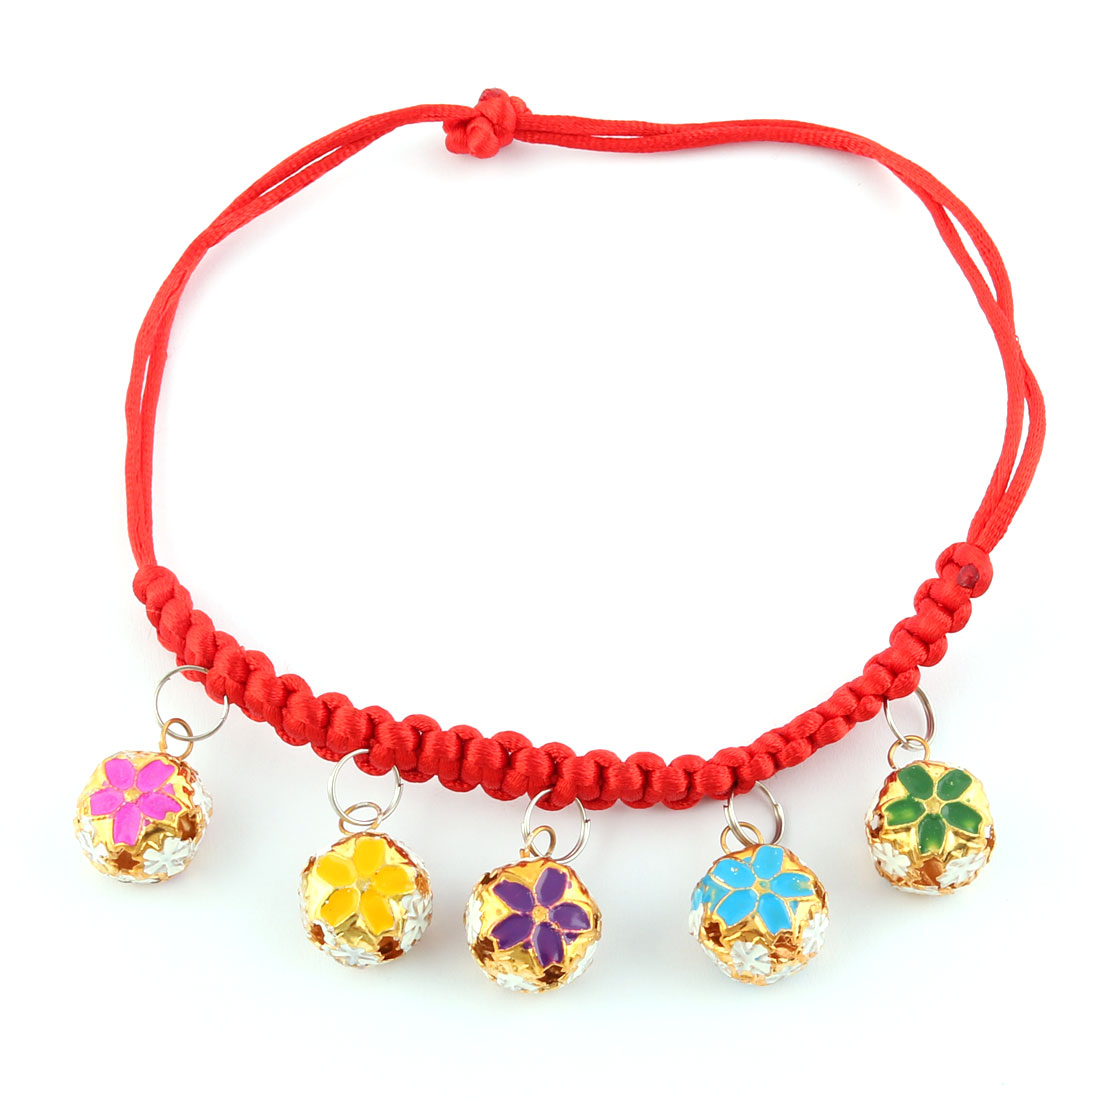 Pet Dog Cat Nylon Frabic Braided String Bell Pendent Adjustable Collar Red